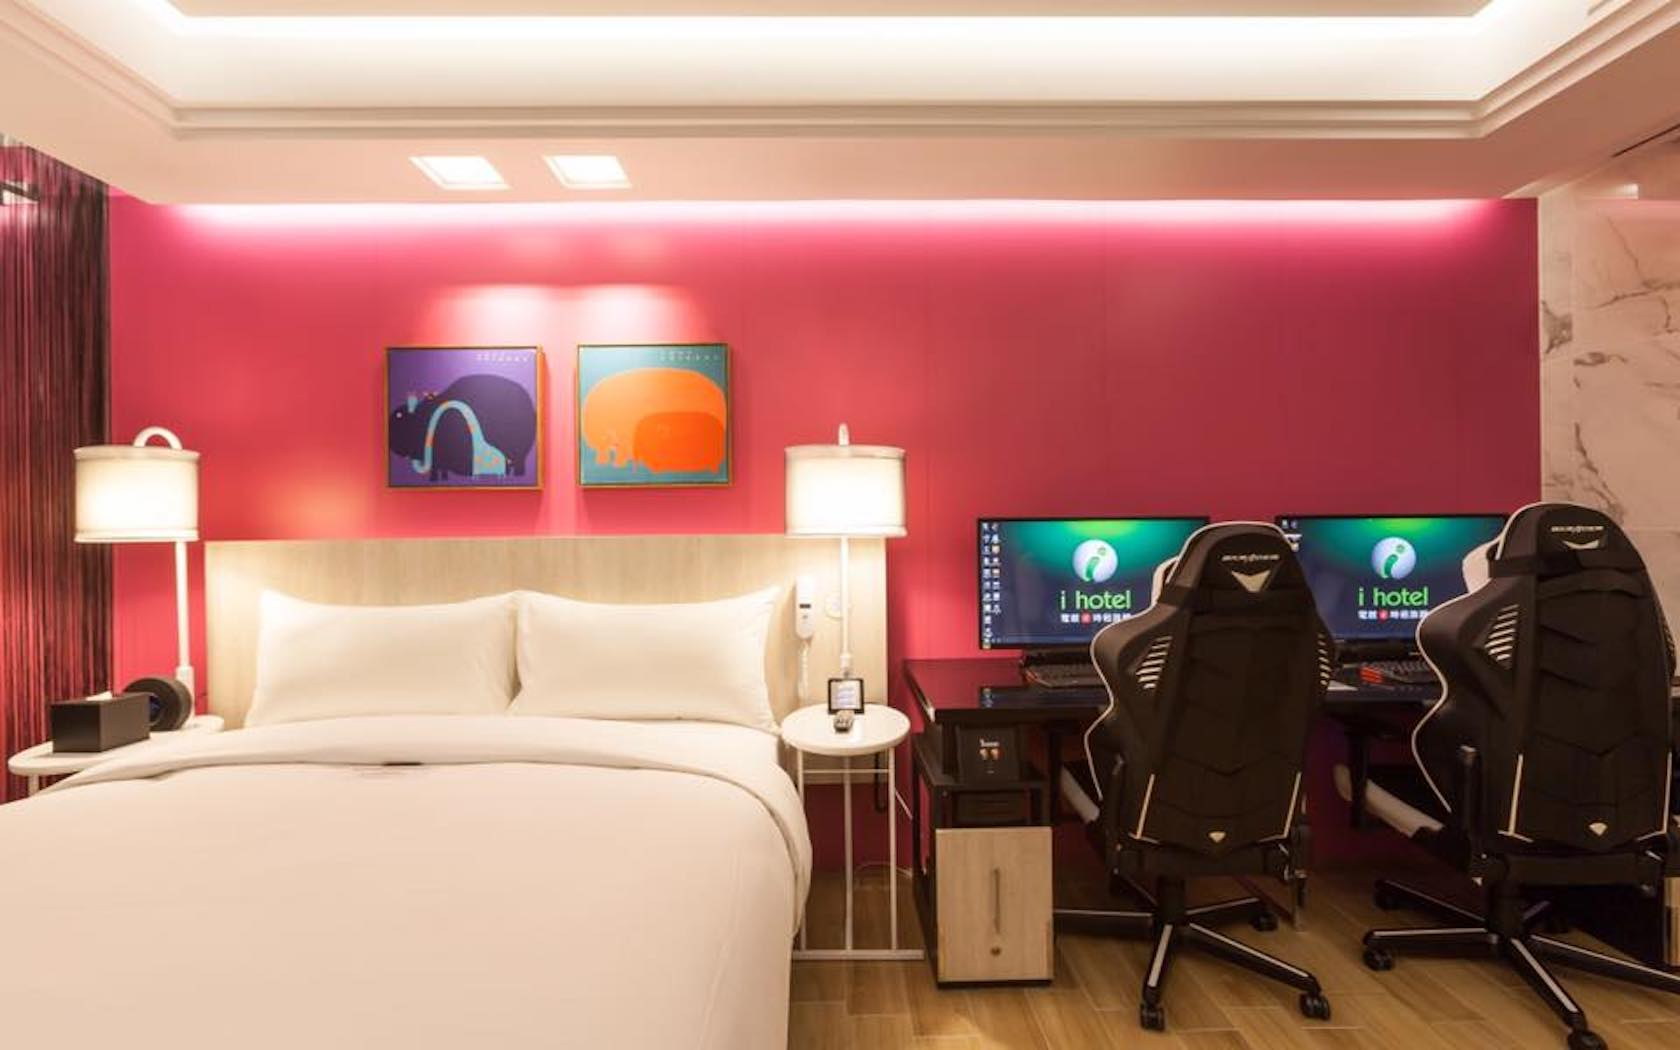 Gamer S Delight Taiwan China S Ihotel Has Gaming